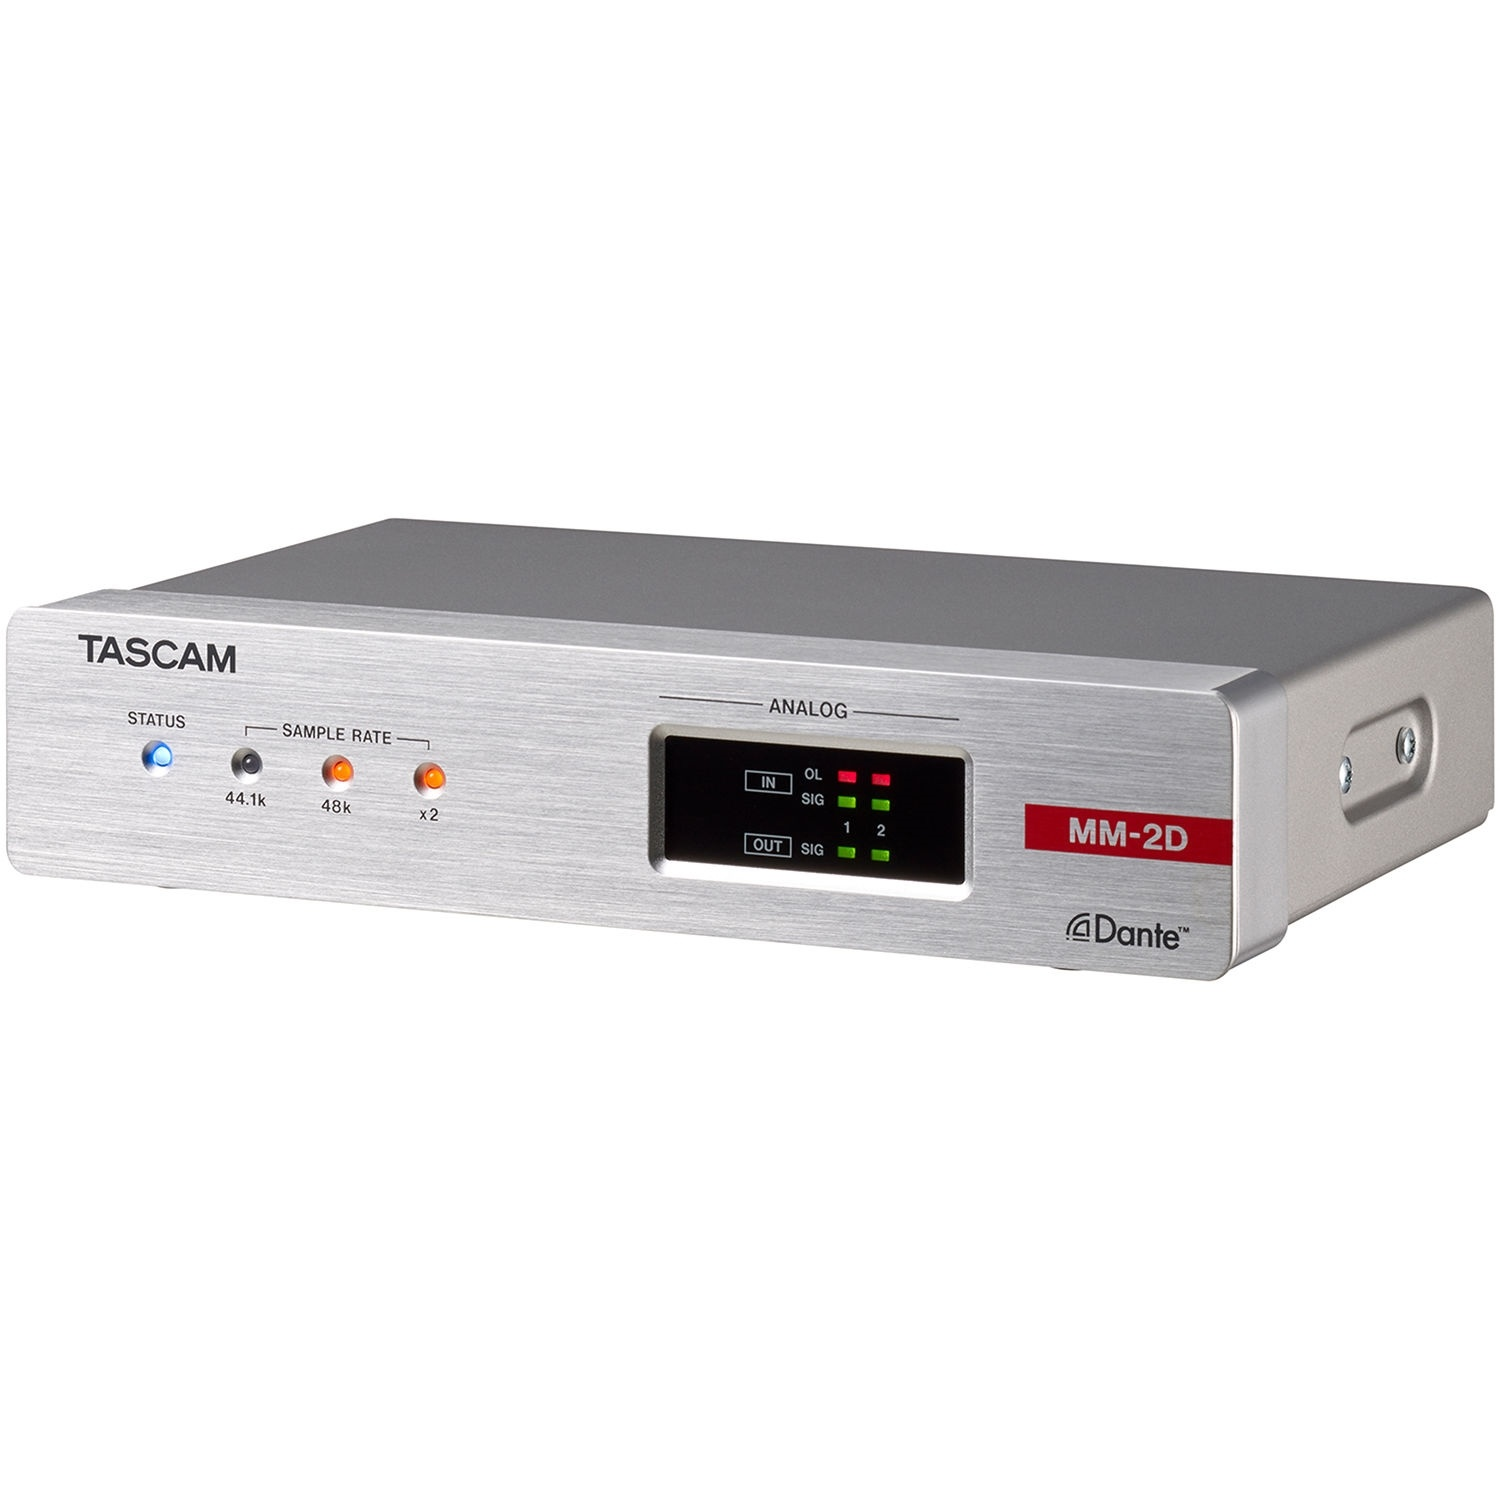 Tascam MM-2D-X 2-Channel Mic/Line Input/Output Dante Converter with Built-In DSP Mixer